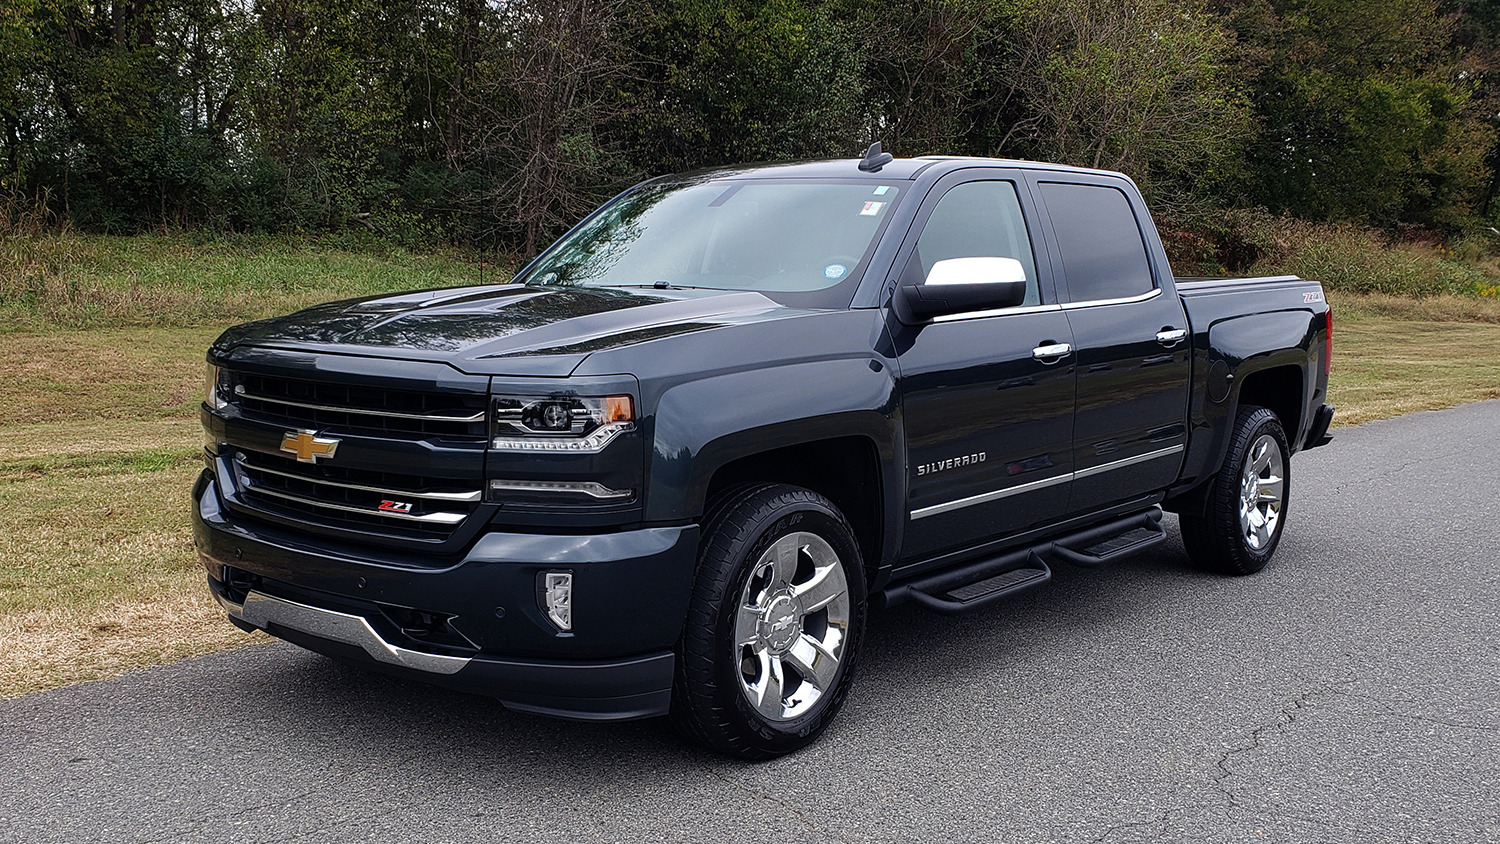 Used 2017 Chevrolet SILVERADO 1500 LTZ 4WD / NAV / BOSE / LEATHER / CAMERA / LOADED for sale Sold at Formula Imports in Charlotte NC 28227 100